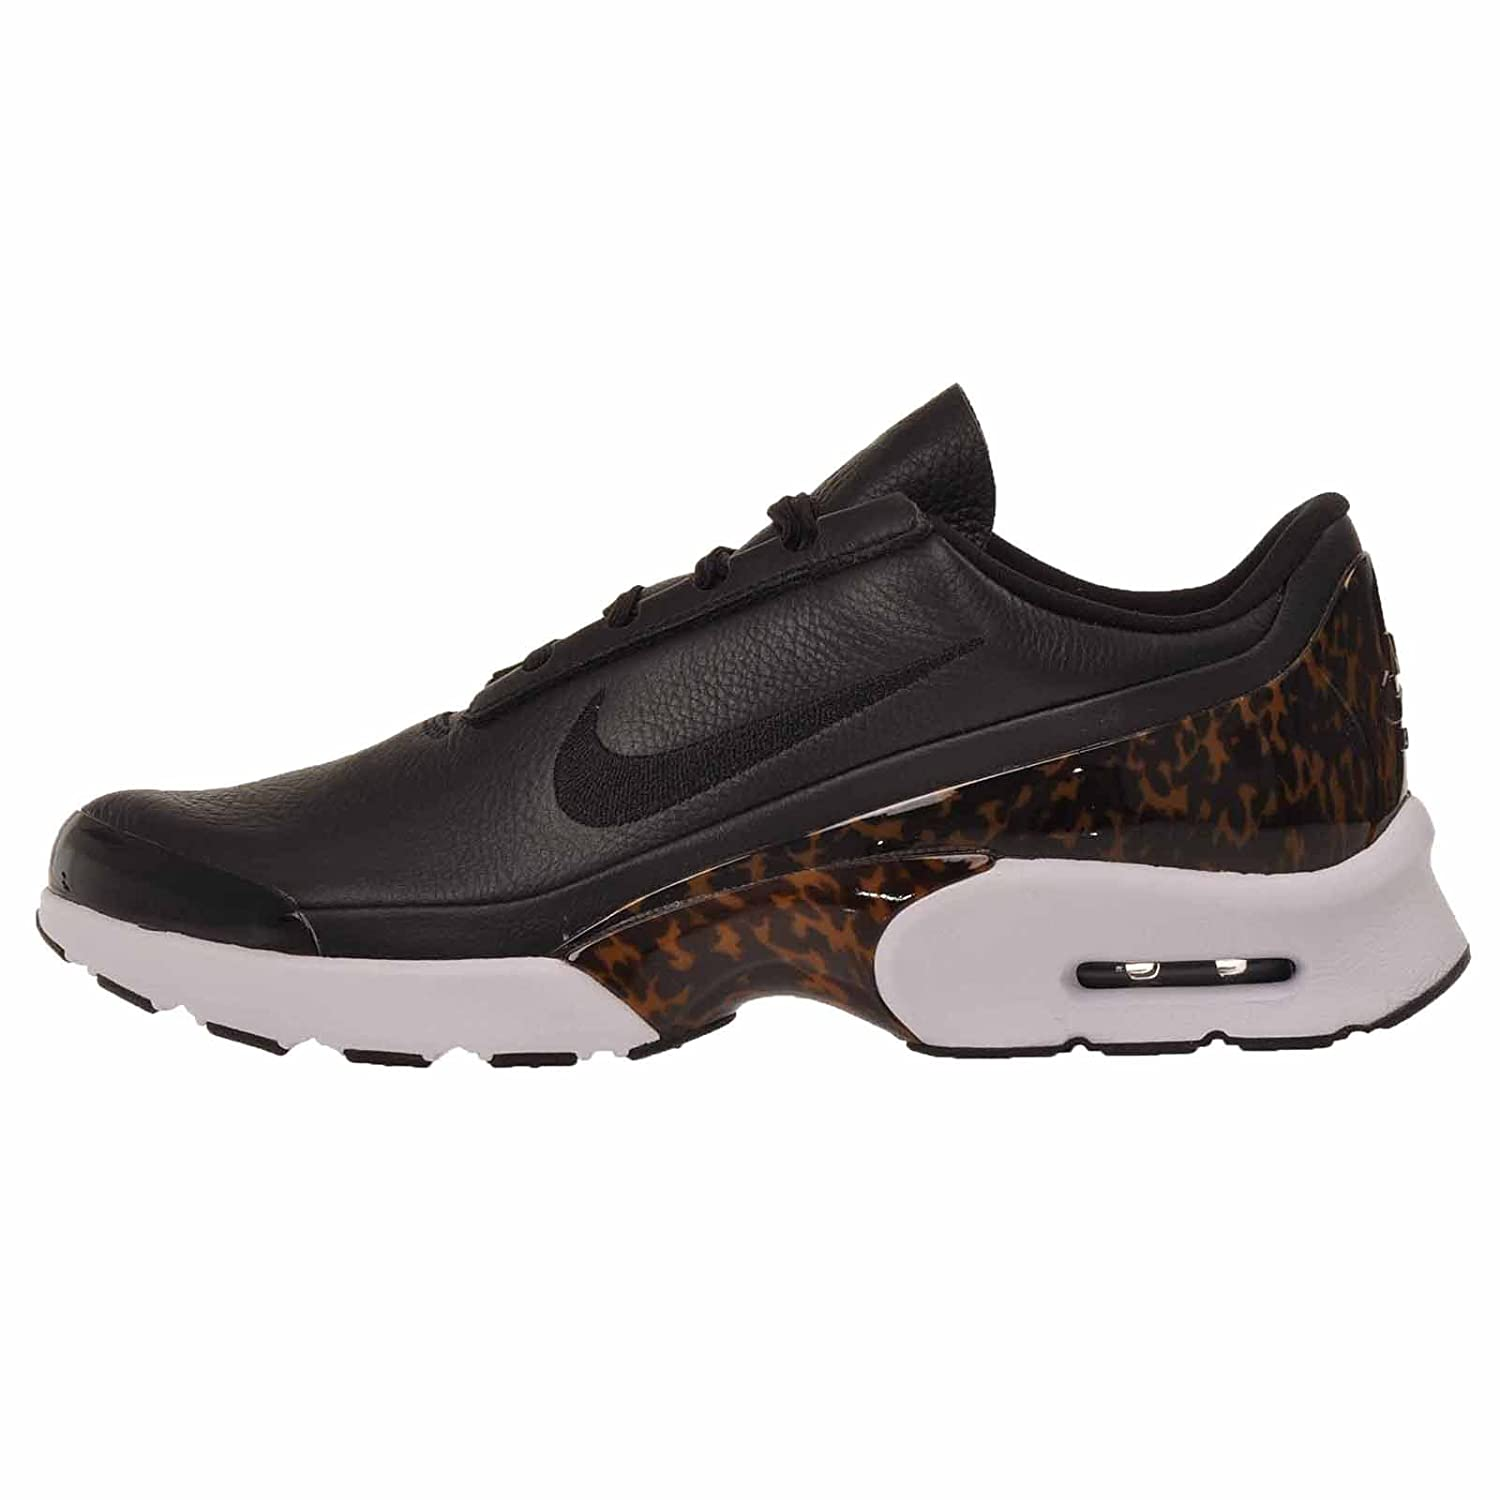 NIKE Womens Air Max Jewell Lx Running Trainers 896196 Sneakers Shoes (UK 6 US 8.5 EU 40, Black White 001)